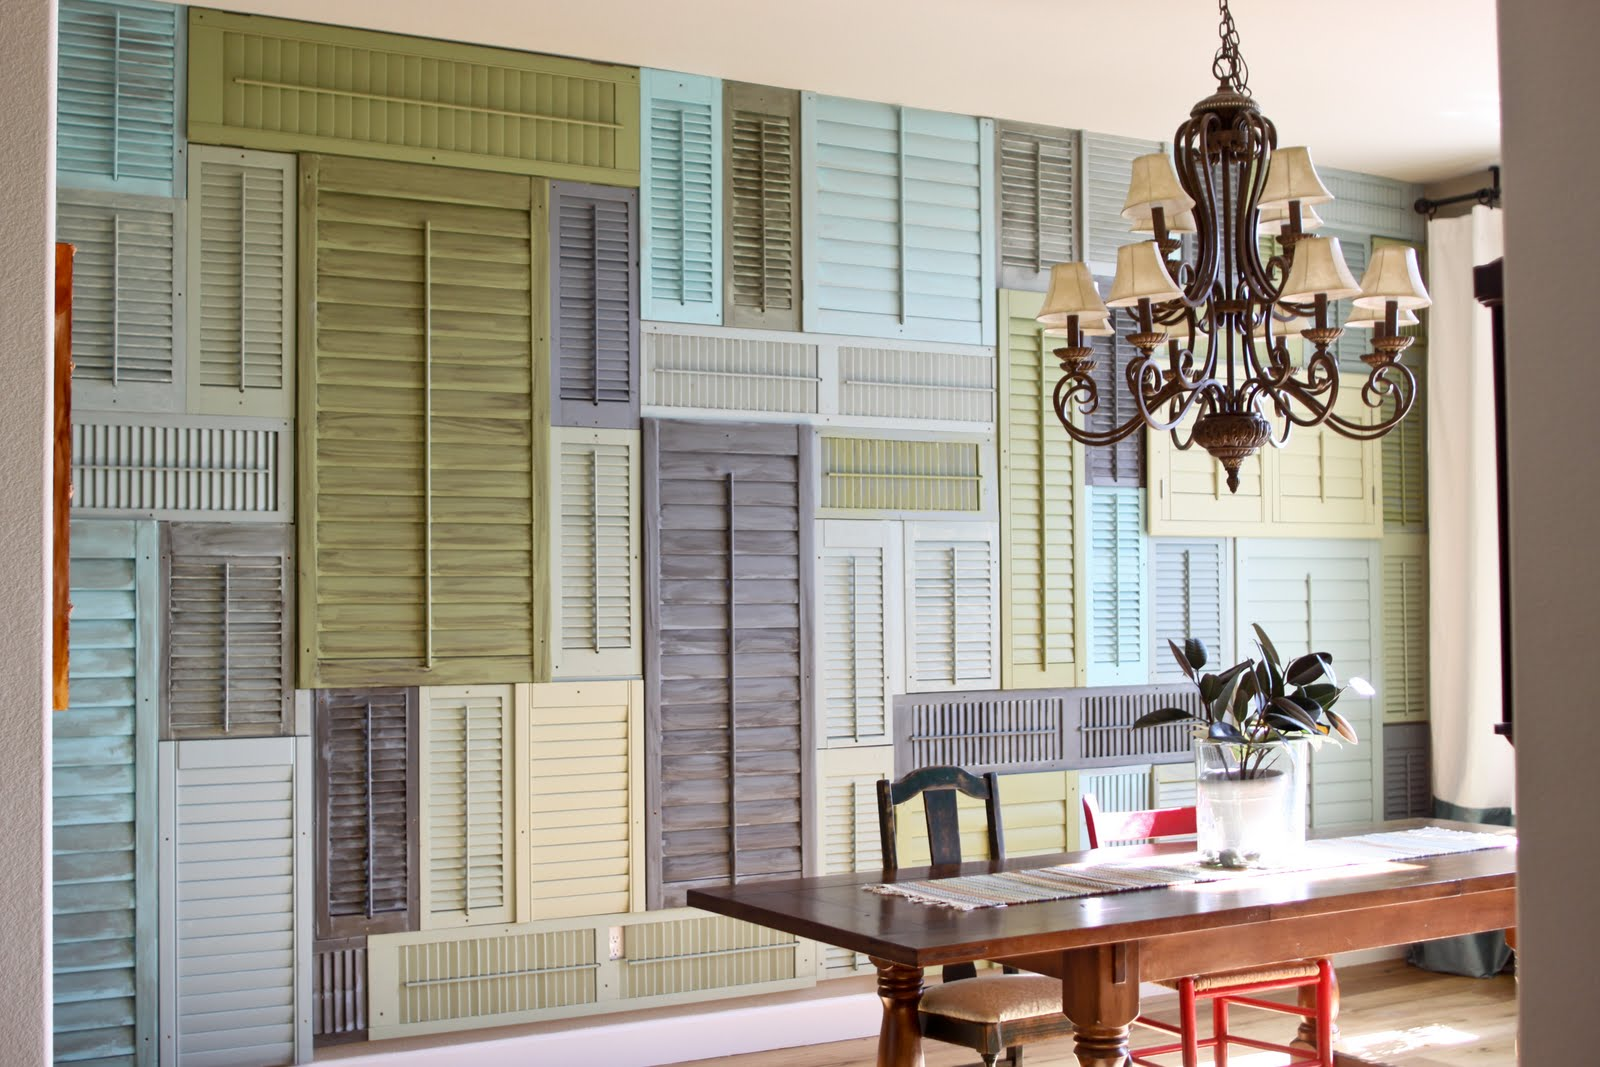 Old shutters are incredibly versatile in the DIY and upcycling world. Learn how to create some masterfully crafted home decor items out of shutters!